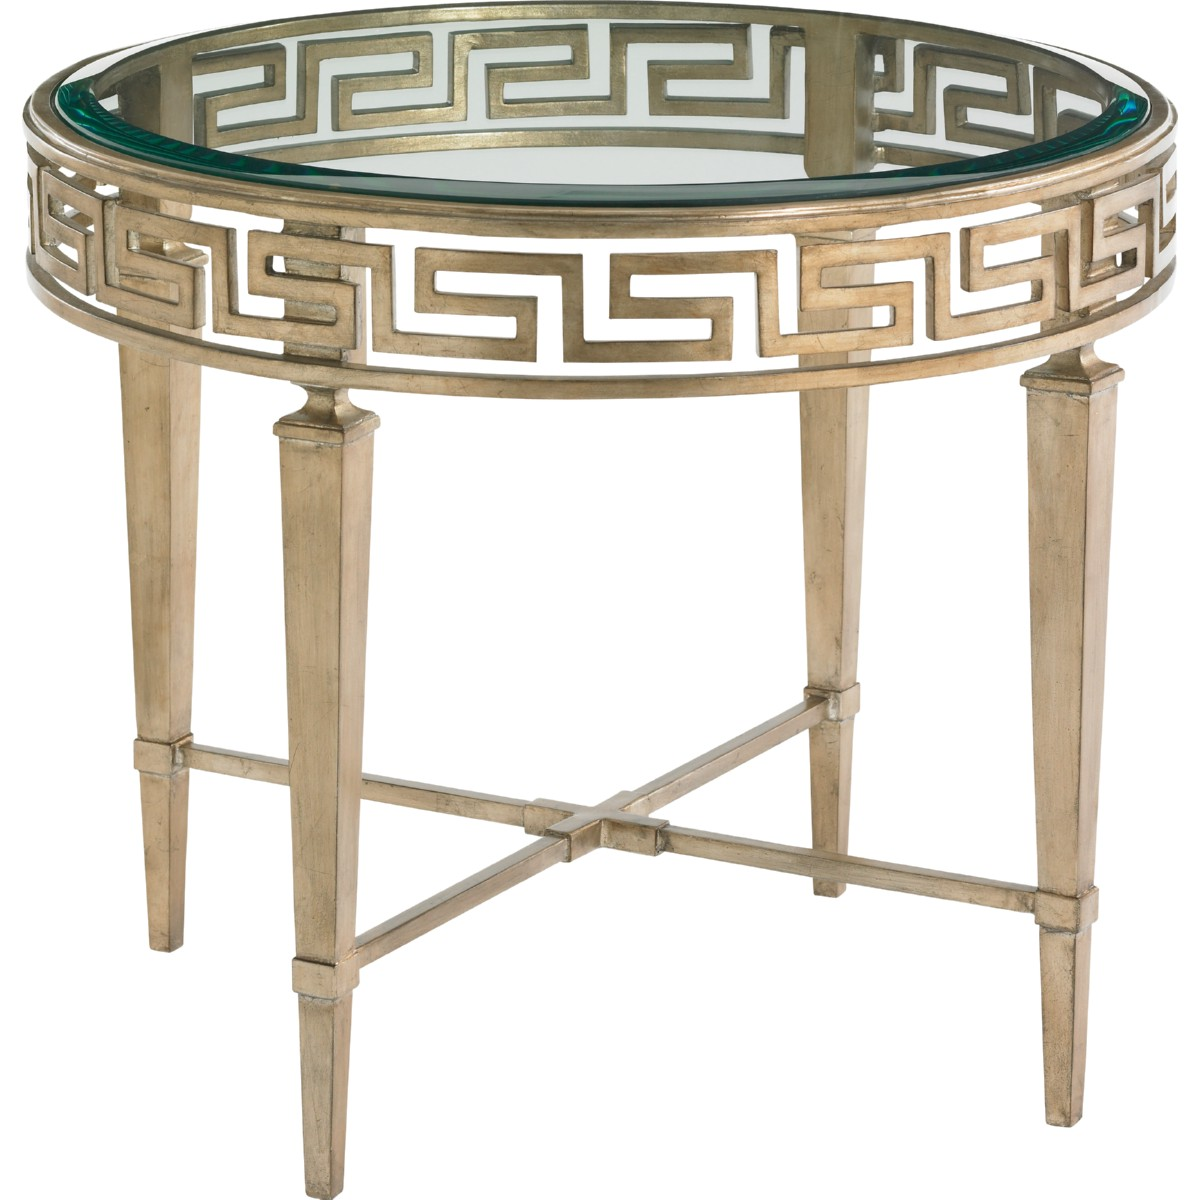 Lexington 706 951 Aston Round Lamp Table W Greek Key Trim